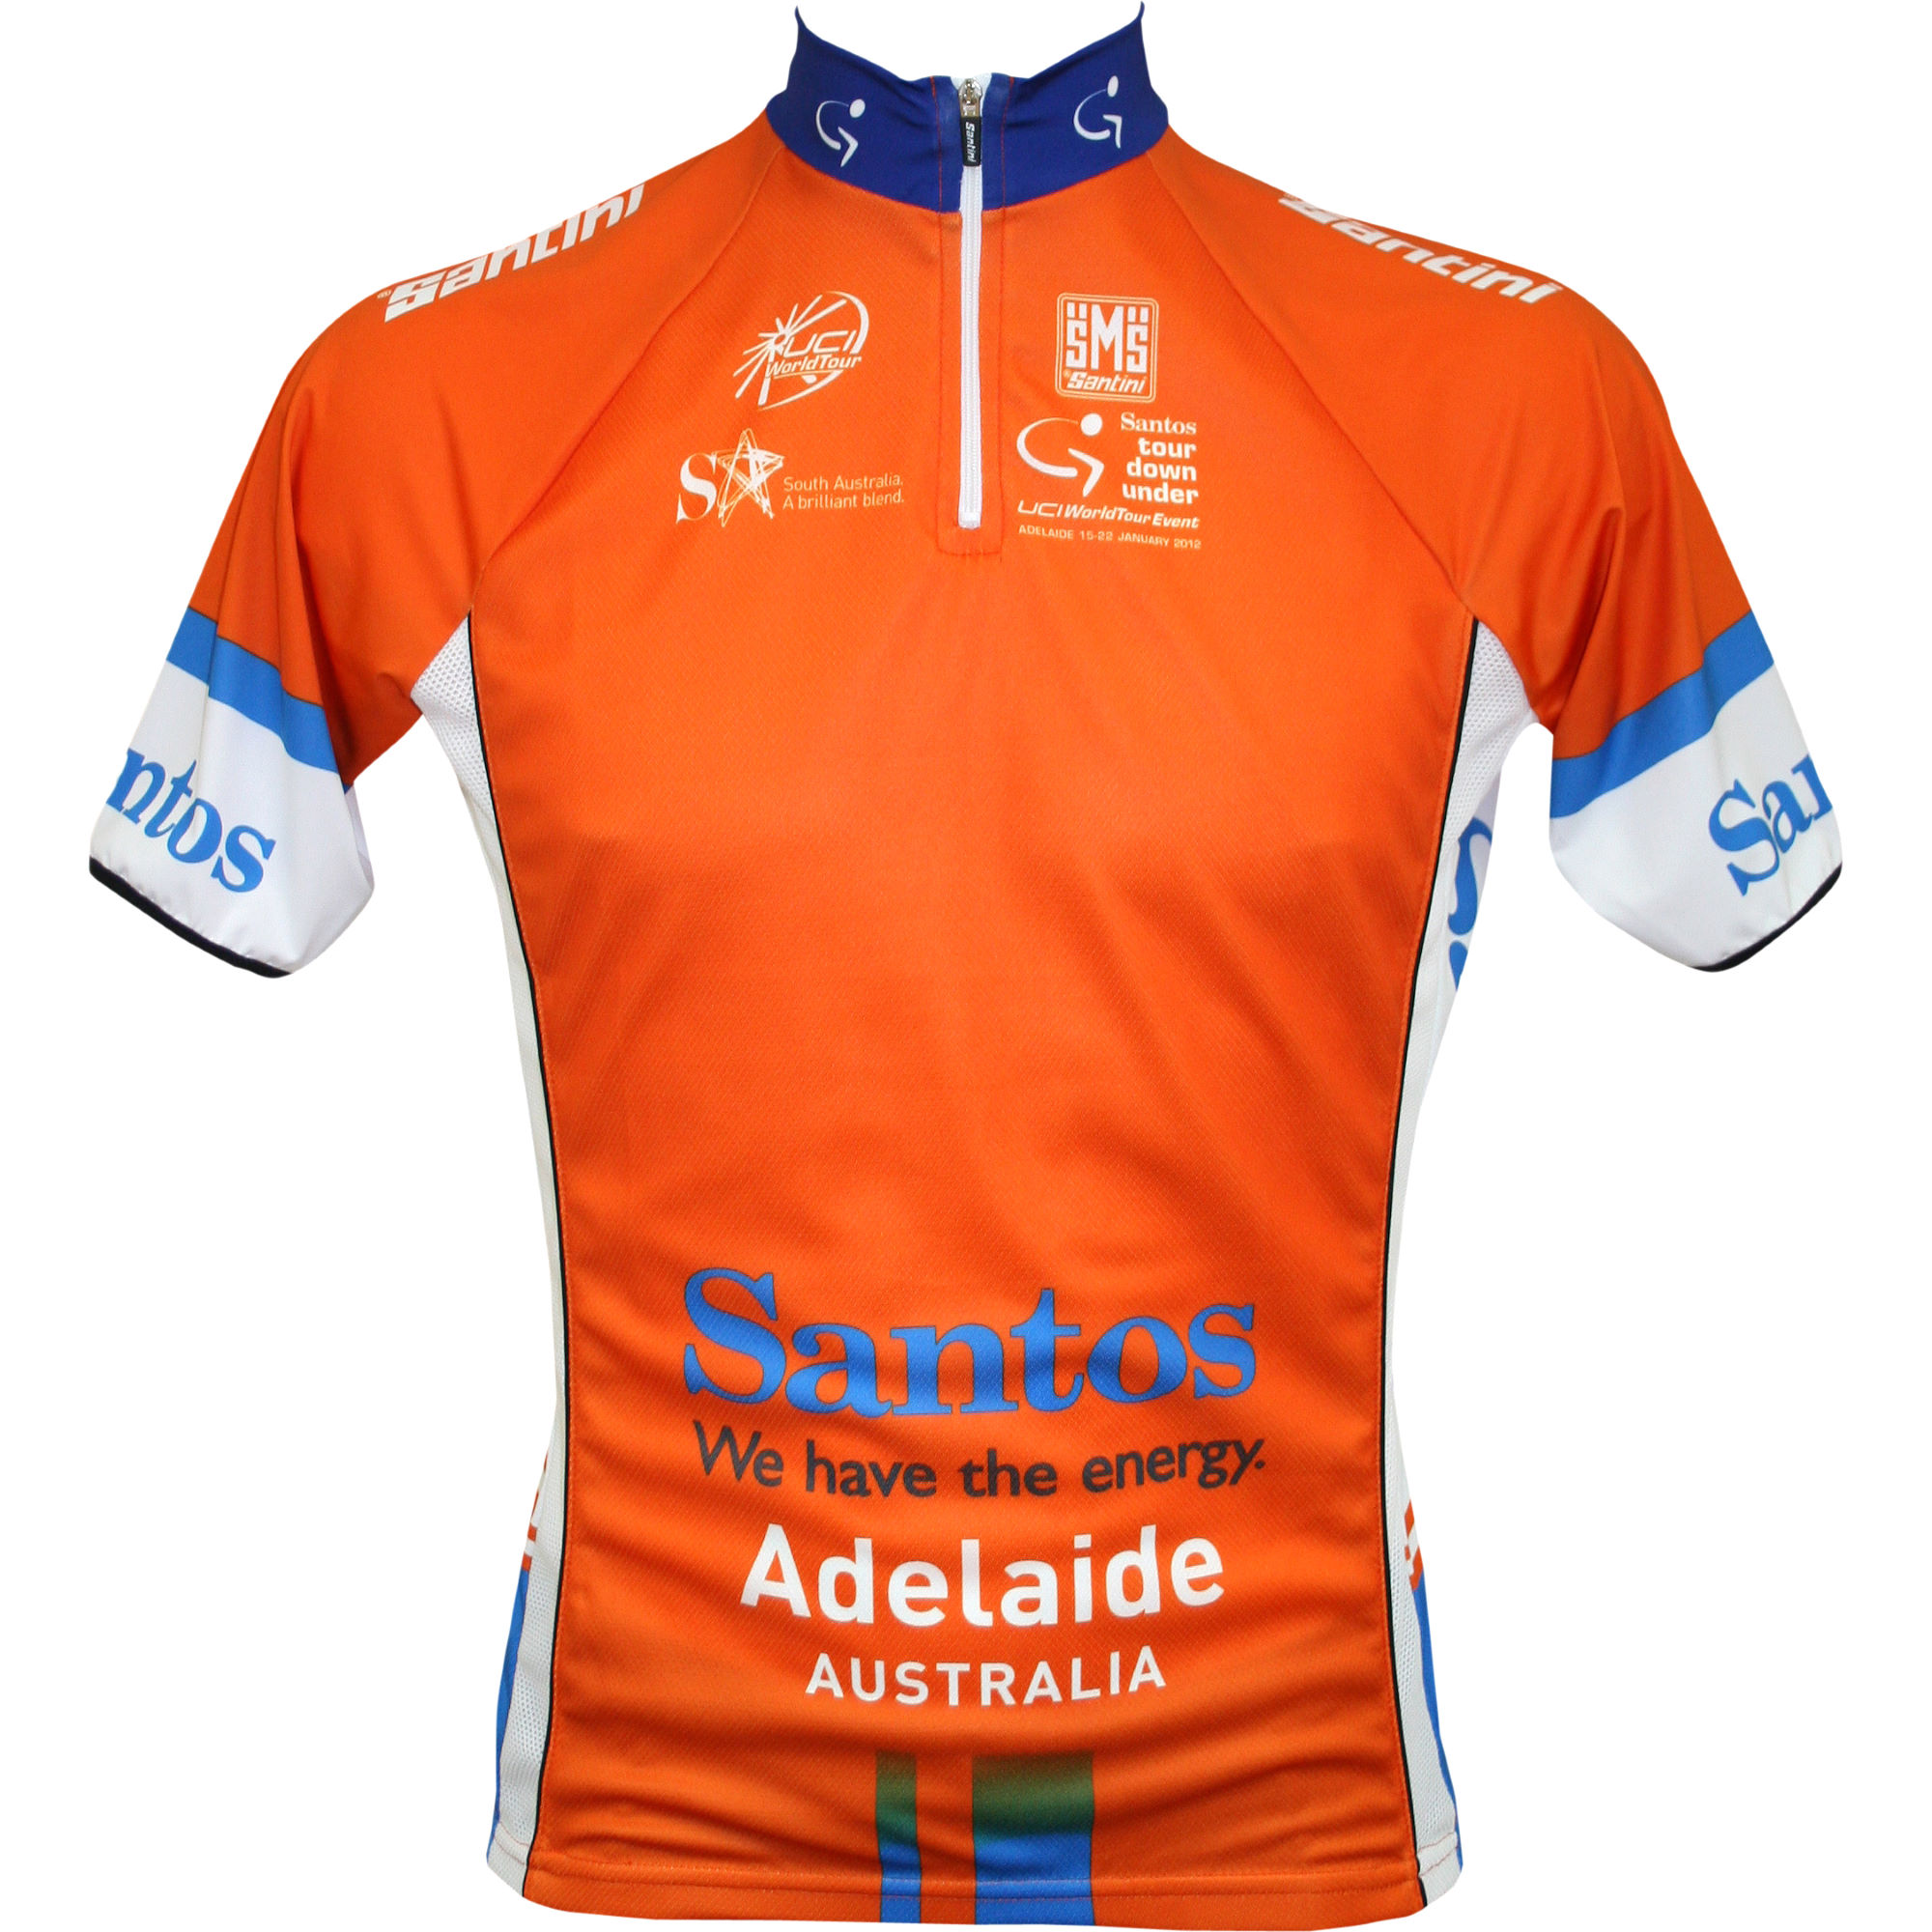 Santini - Tour Down Under Leaders ジャージ - 2012